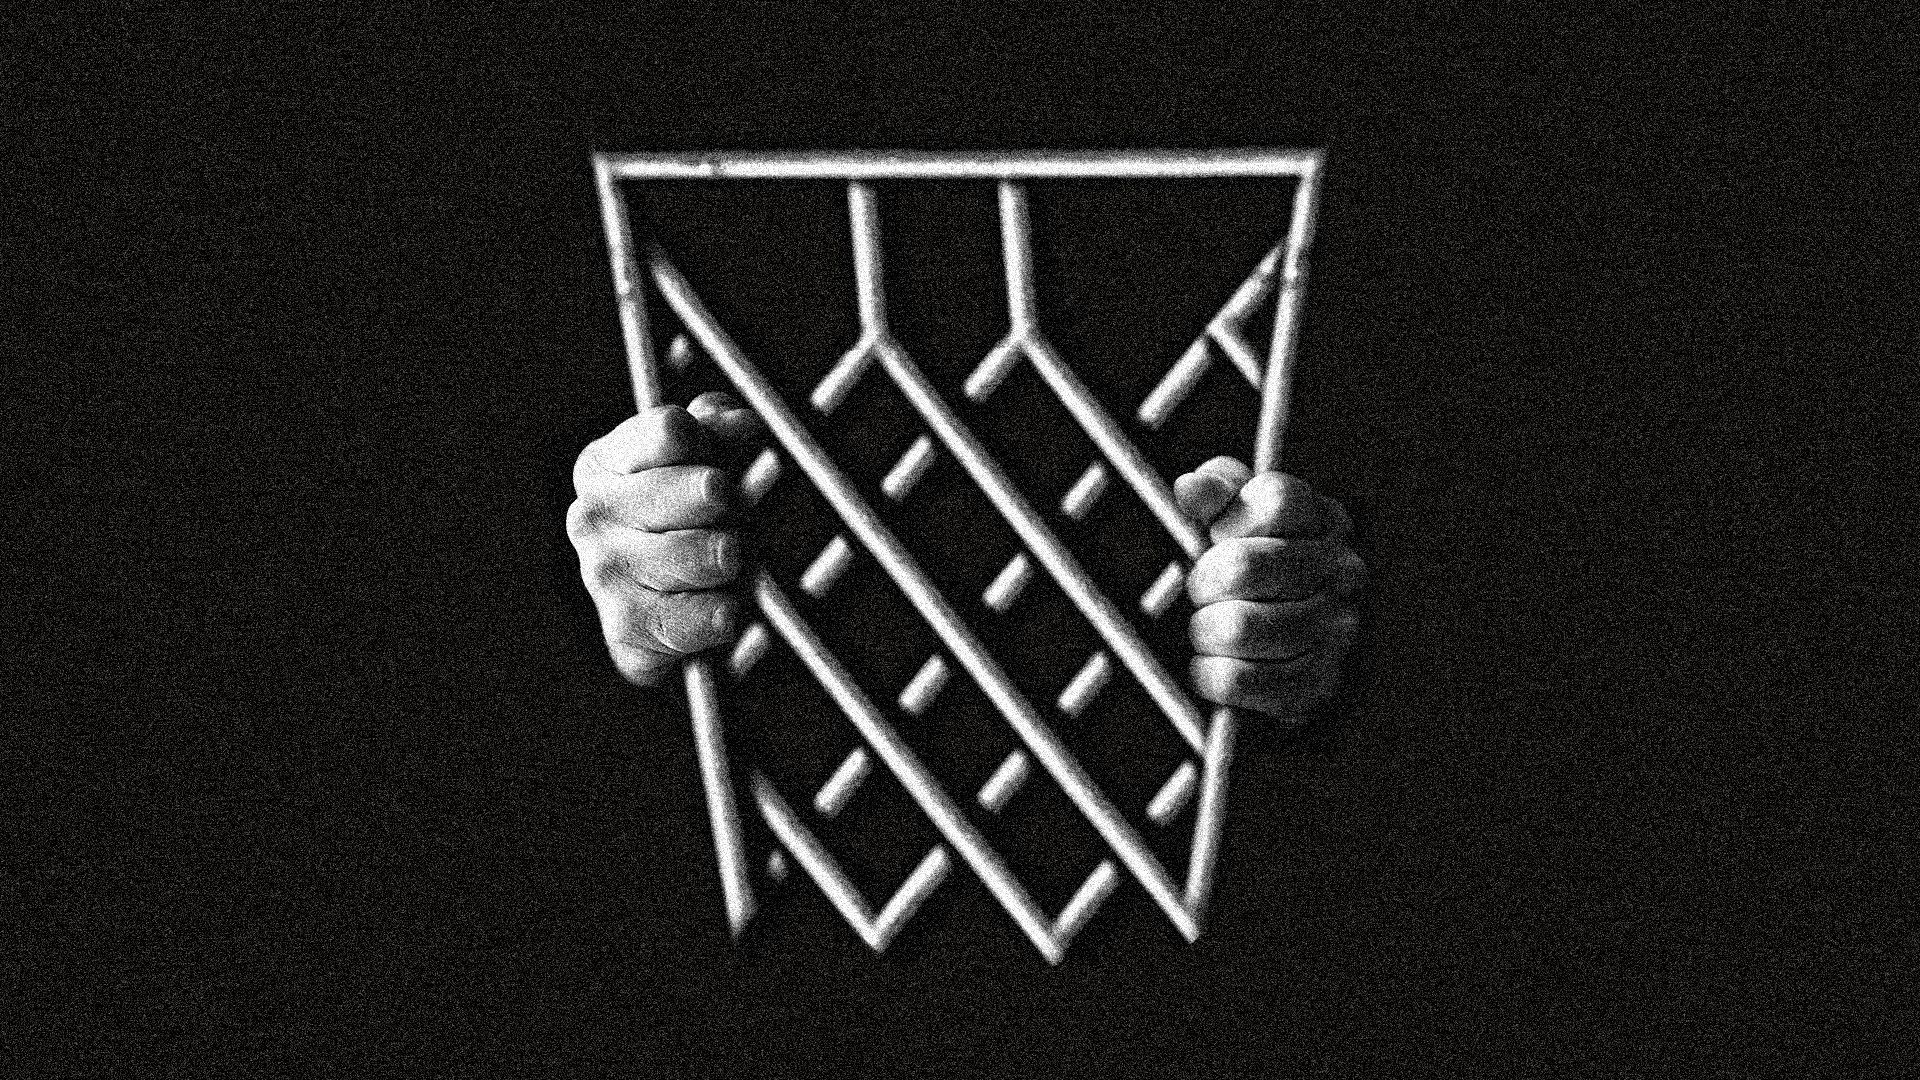 Illustration of a basketball net made out of prison bars